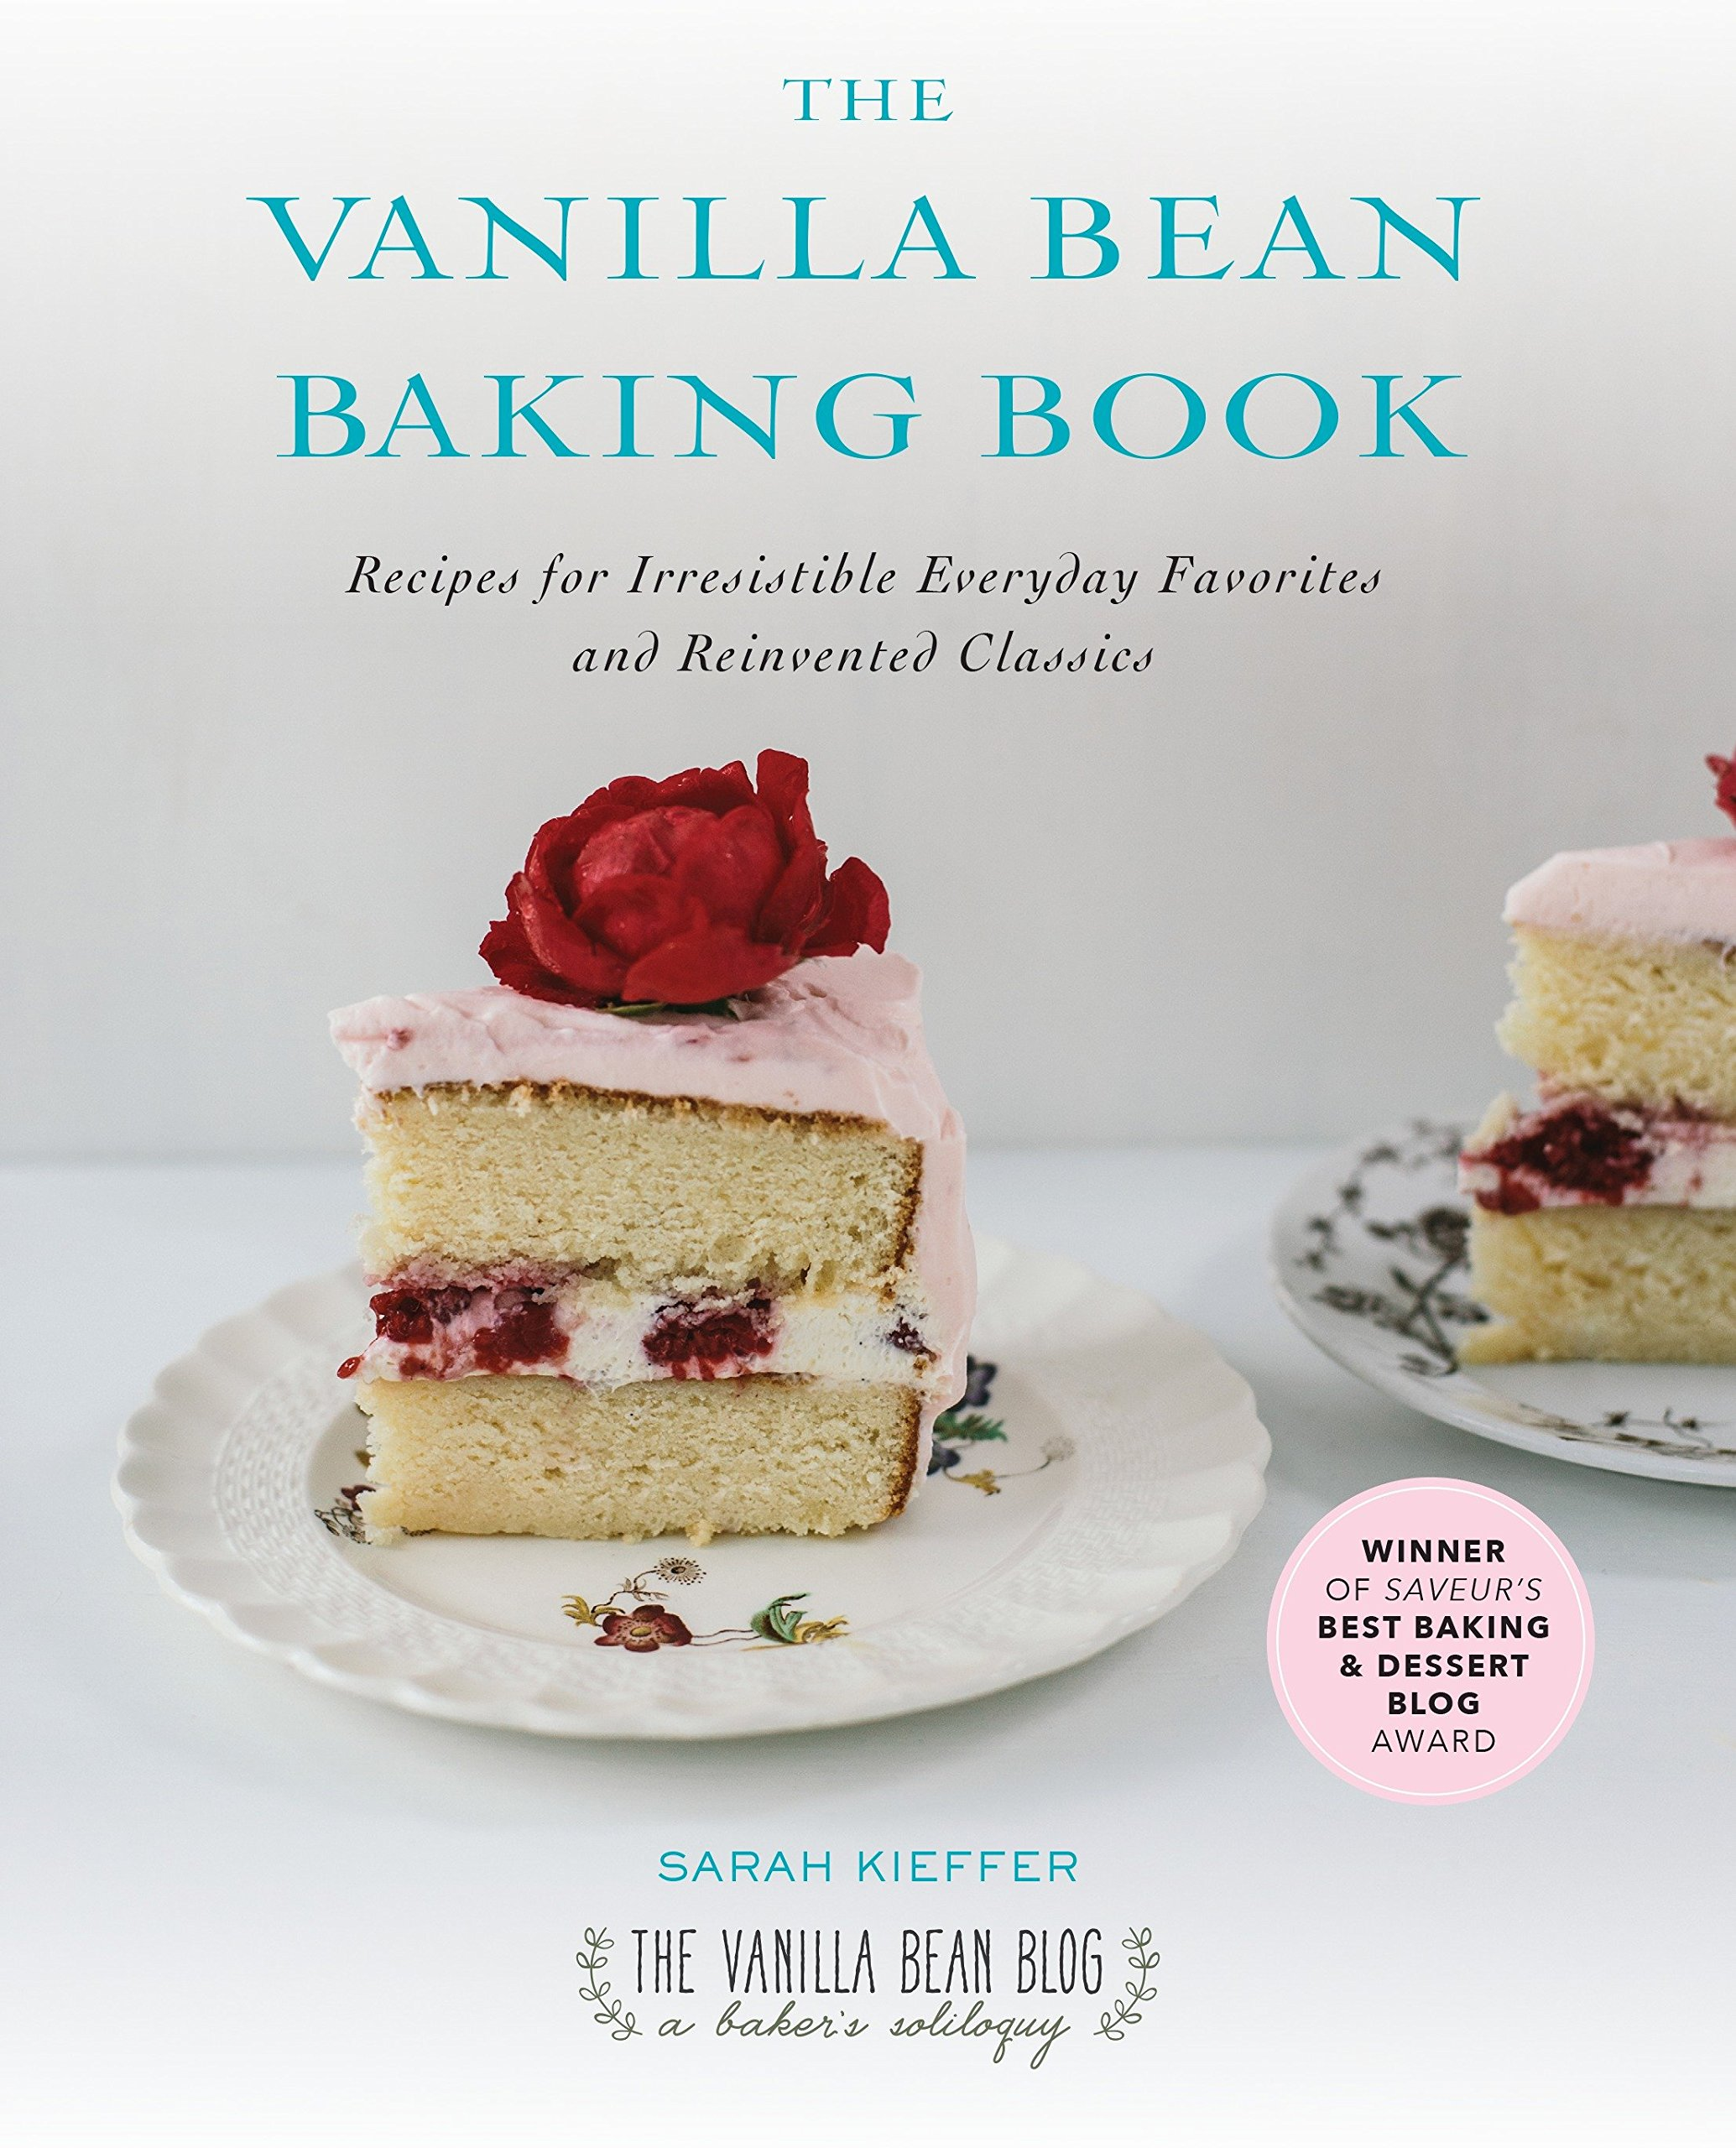 The Vanilla Bean Baking Book: Recipes for Irresistible Everyday Favorites and Reinvented Classics by Avery Publishing Group